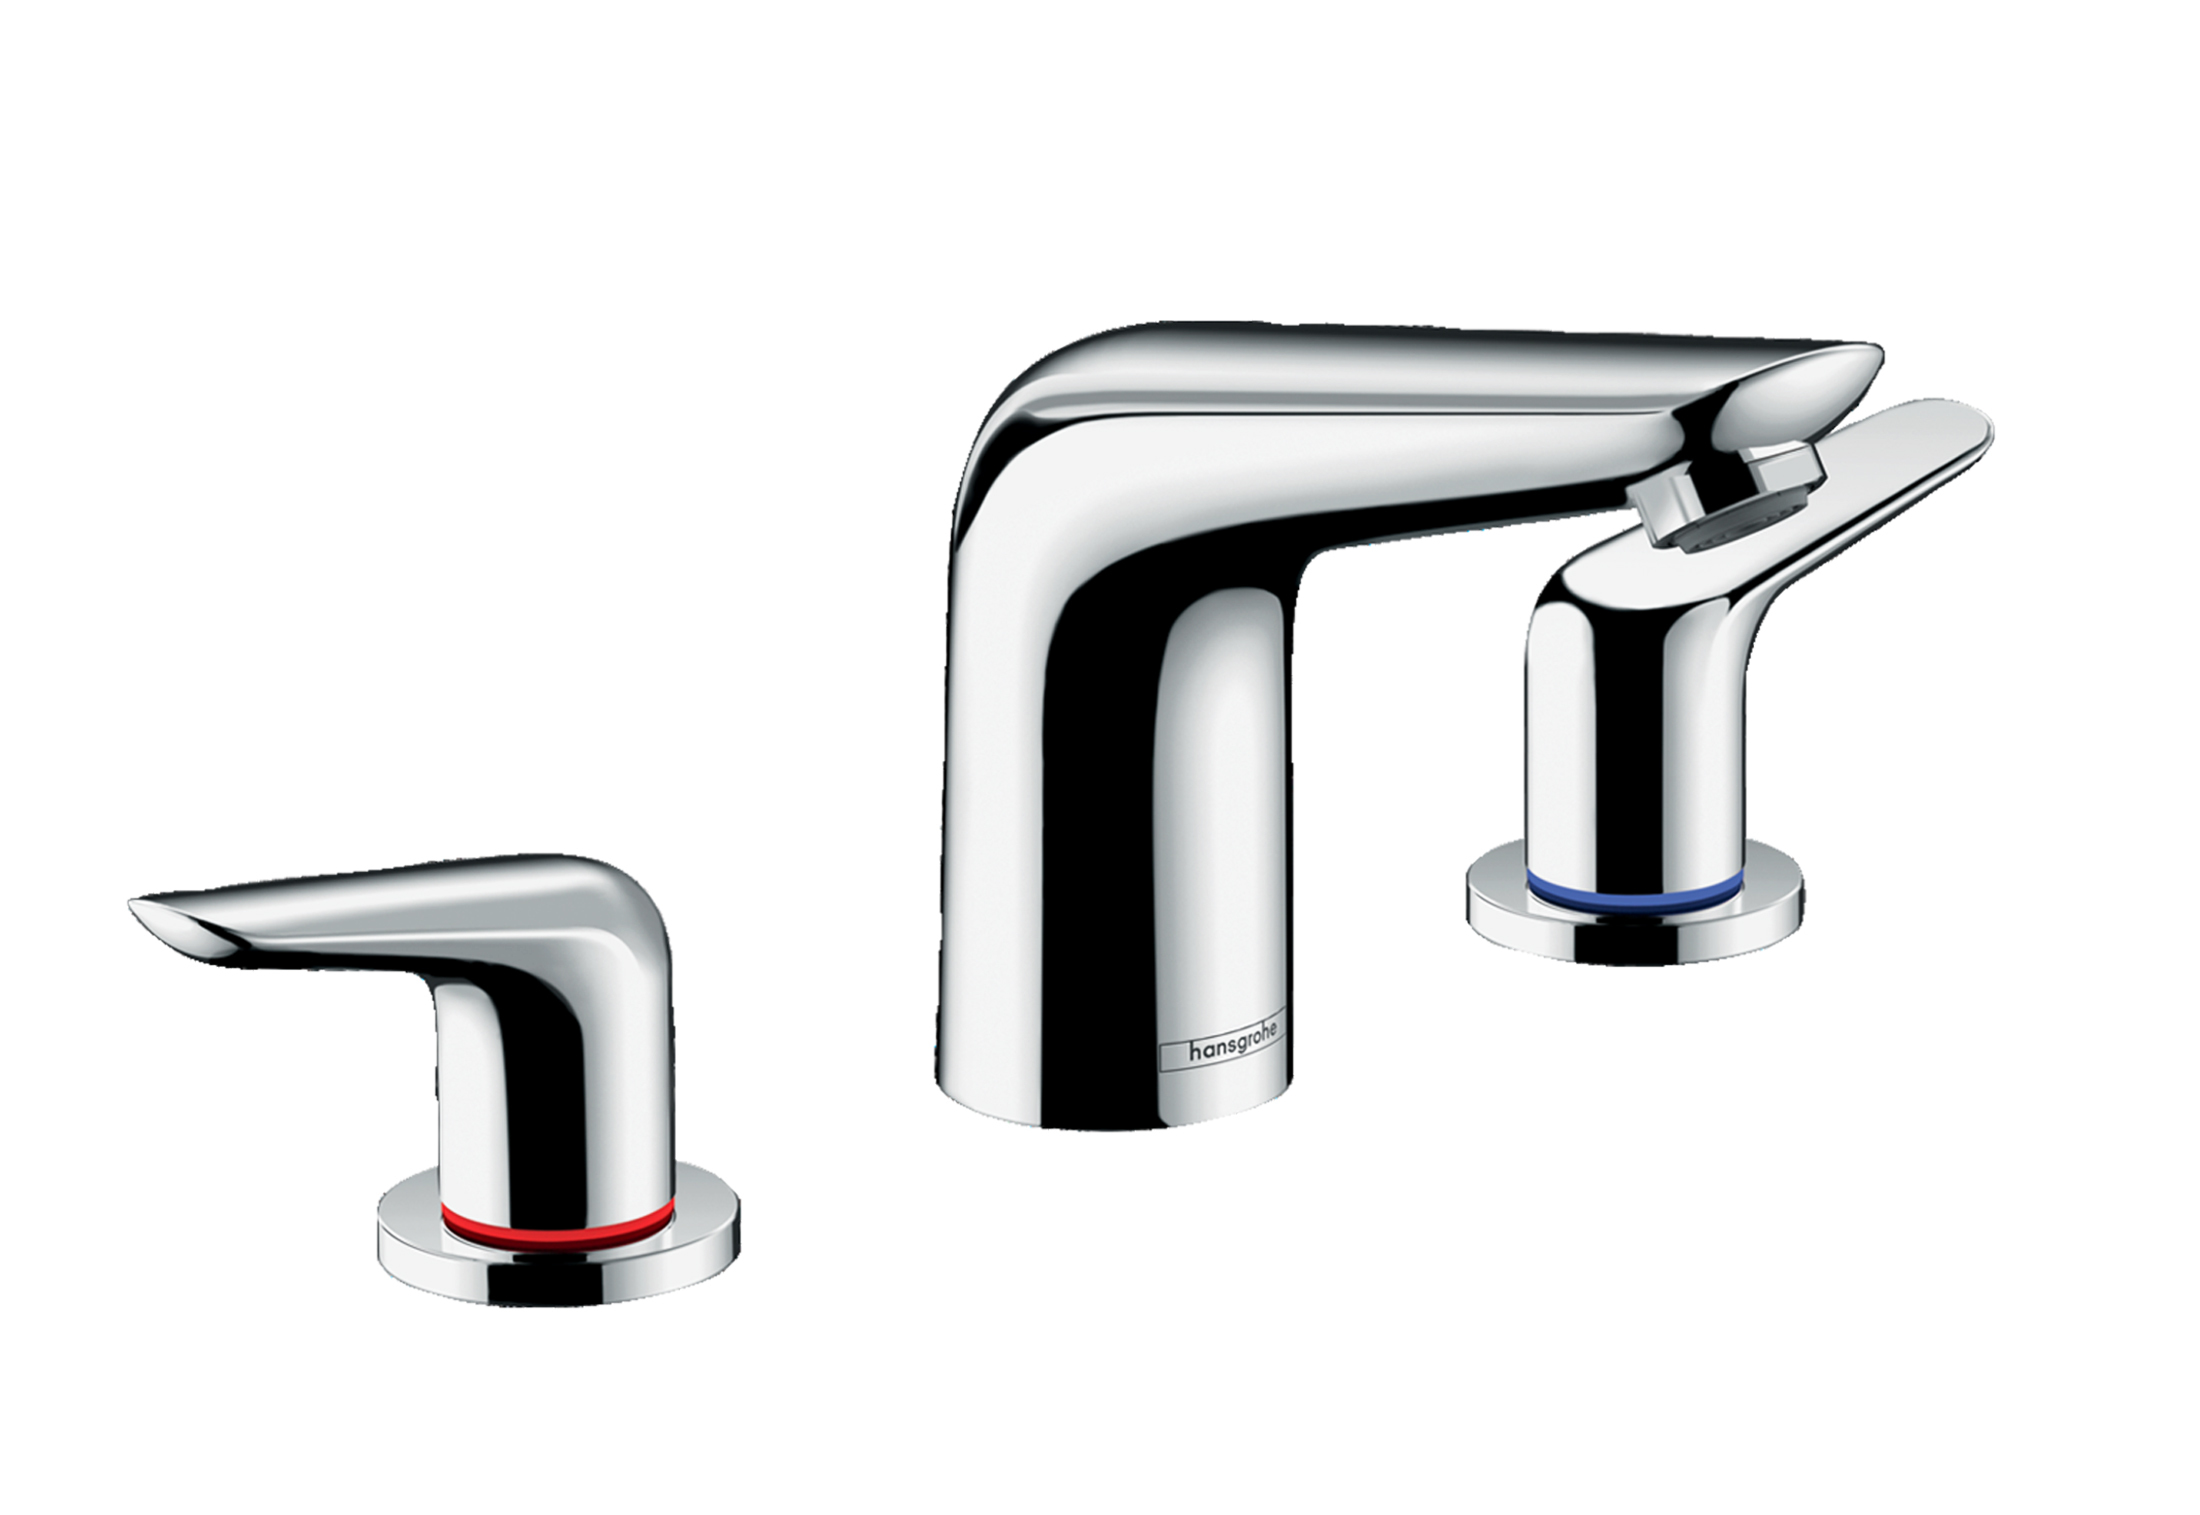 Novus 3-hole basin mixer 100 with pop-up waste set by Hansgrohe ...